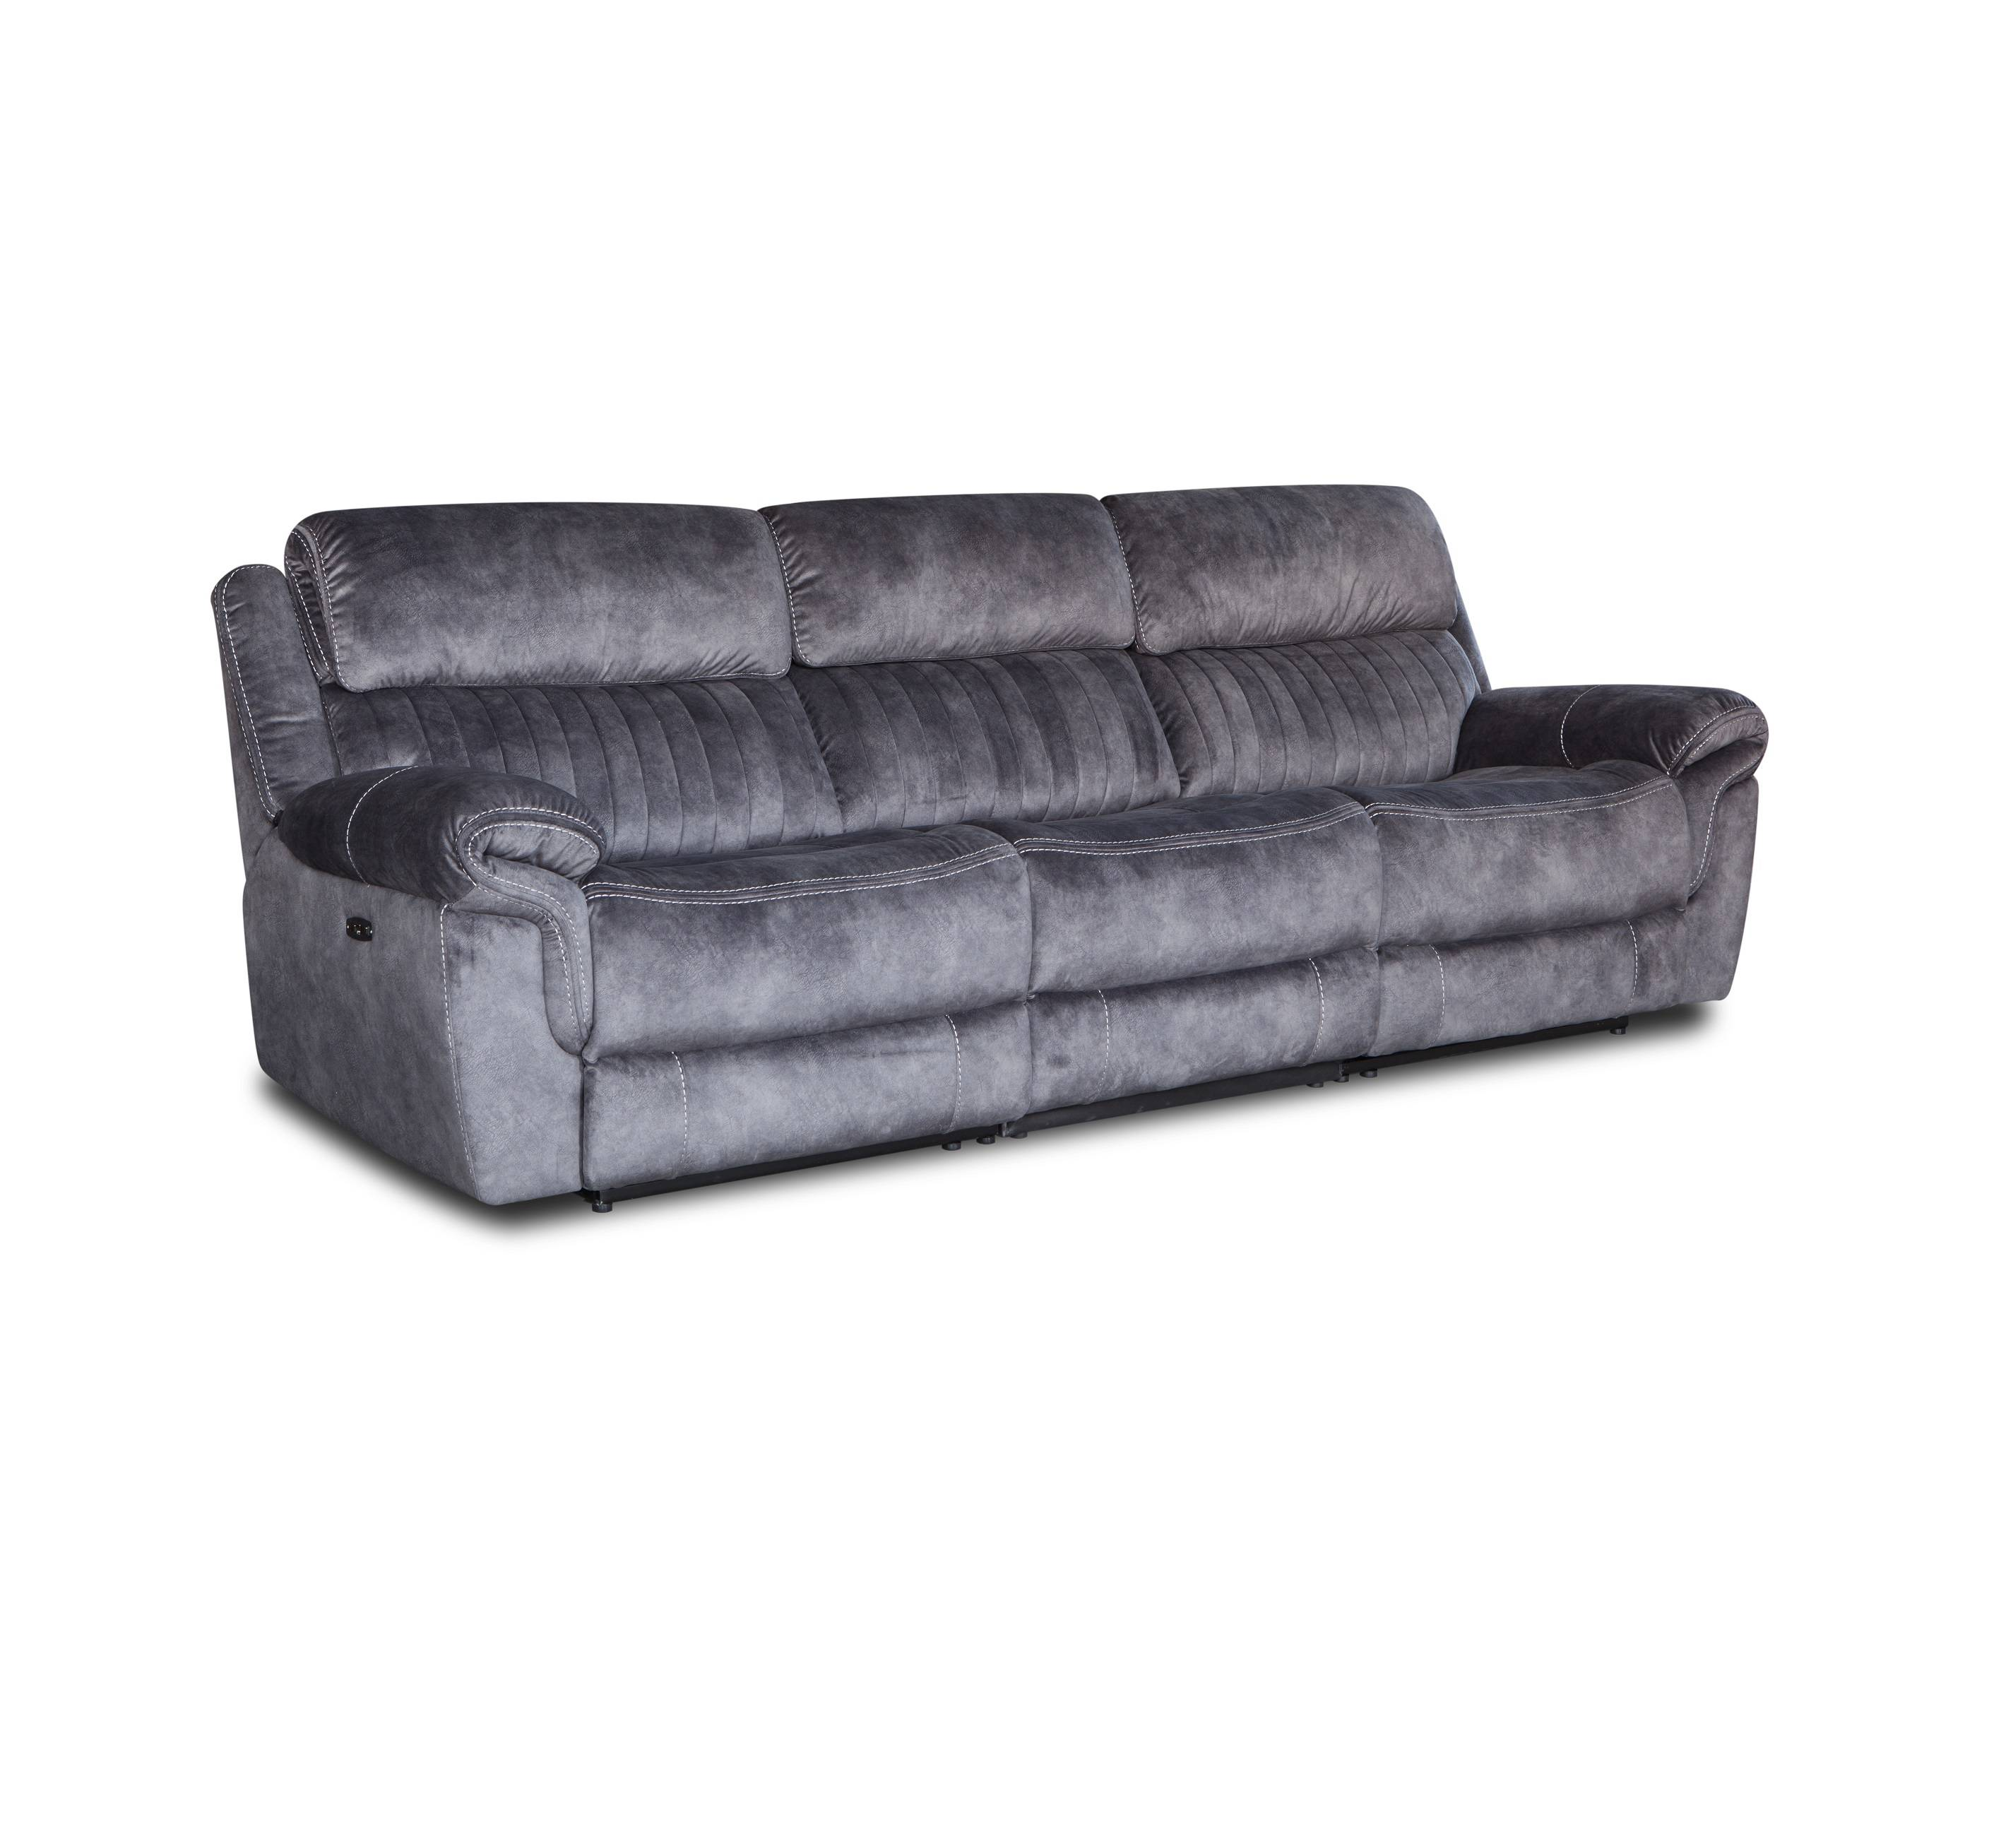 American modern design 3 seat soft recliner fabric sofa